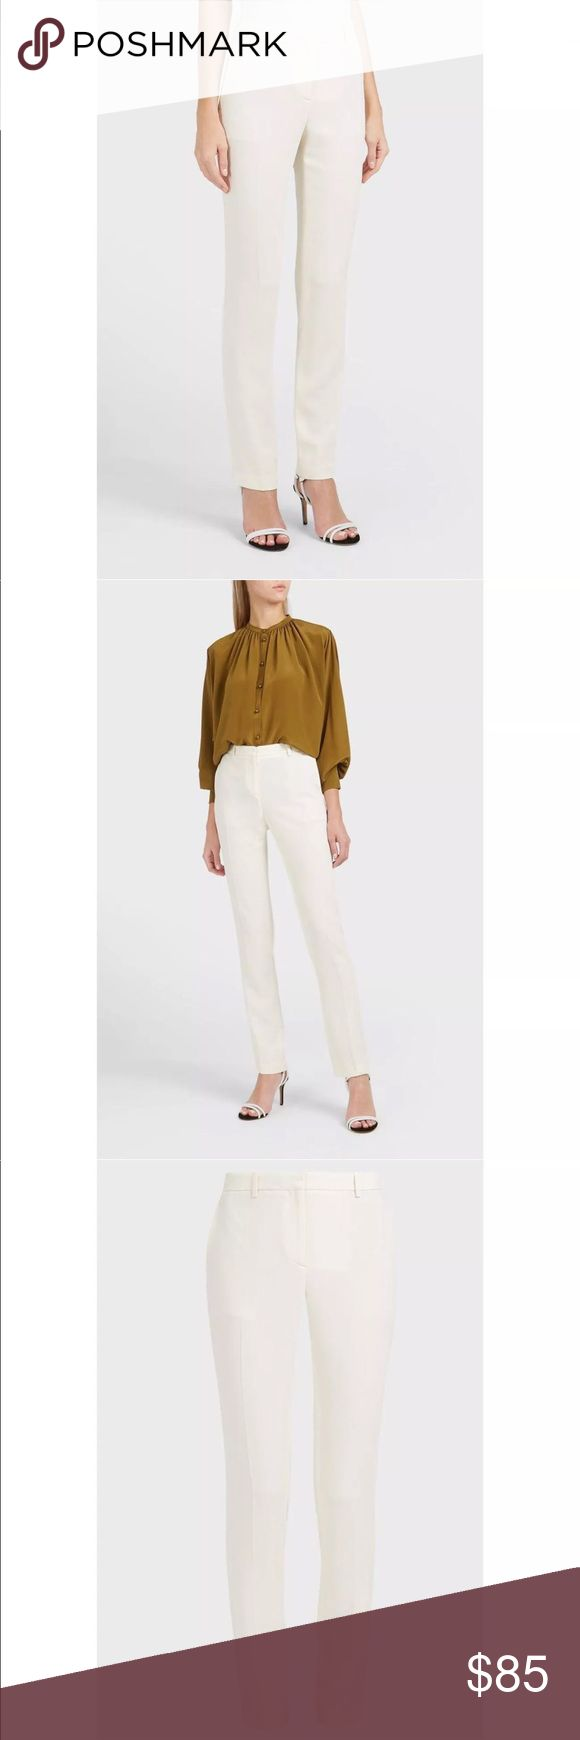 Theory Ivory Hartsdale Np Approach 2 Slim Pants 2 NWT Shopbop $275 Theory Ivory Hartsdale Np Approach 2 Slim Leg Pants Size 2  SOLD-OUT EVERYWHERE!!!  A solid pant with slant pockets, back button welt pockets and flare leg details to complete your next casual outfit.  Zip fly with hook-and-bar closure.  Size-2 Theory Pants